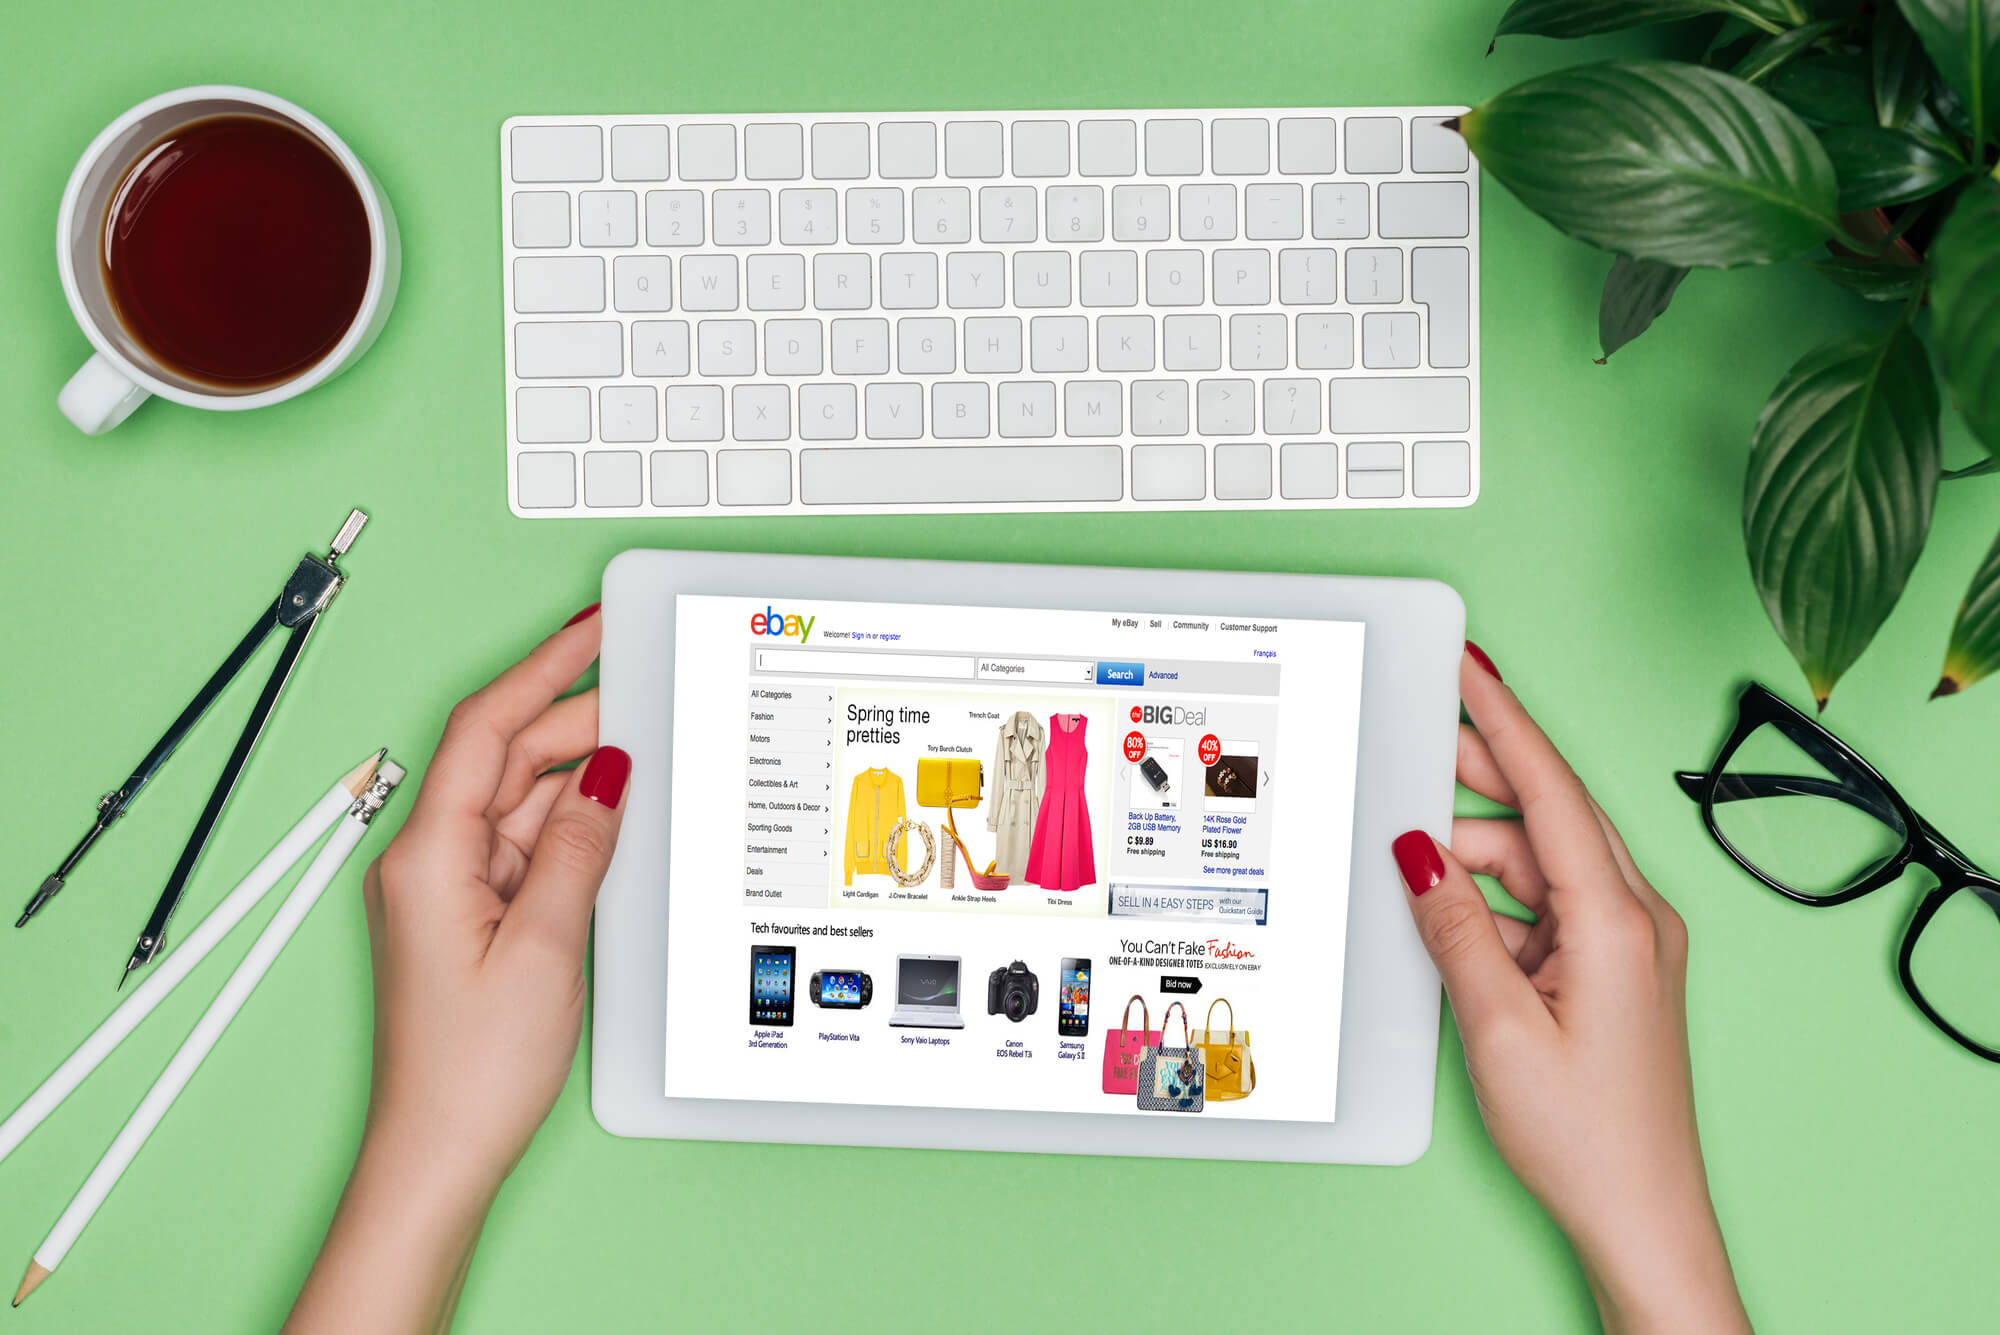 How To Create An Online Marketplace Like eBay From Scratch